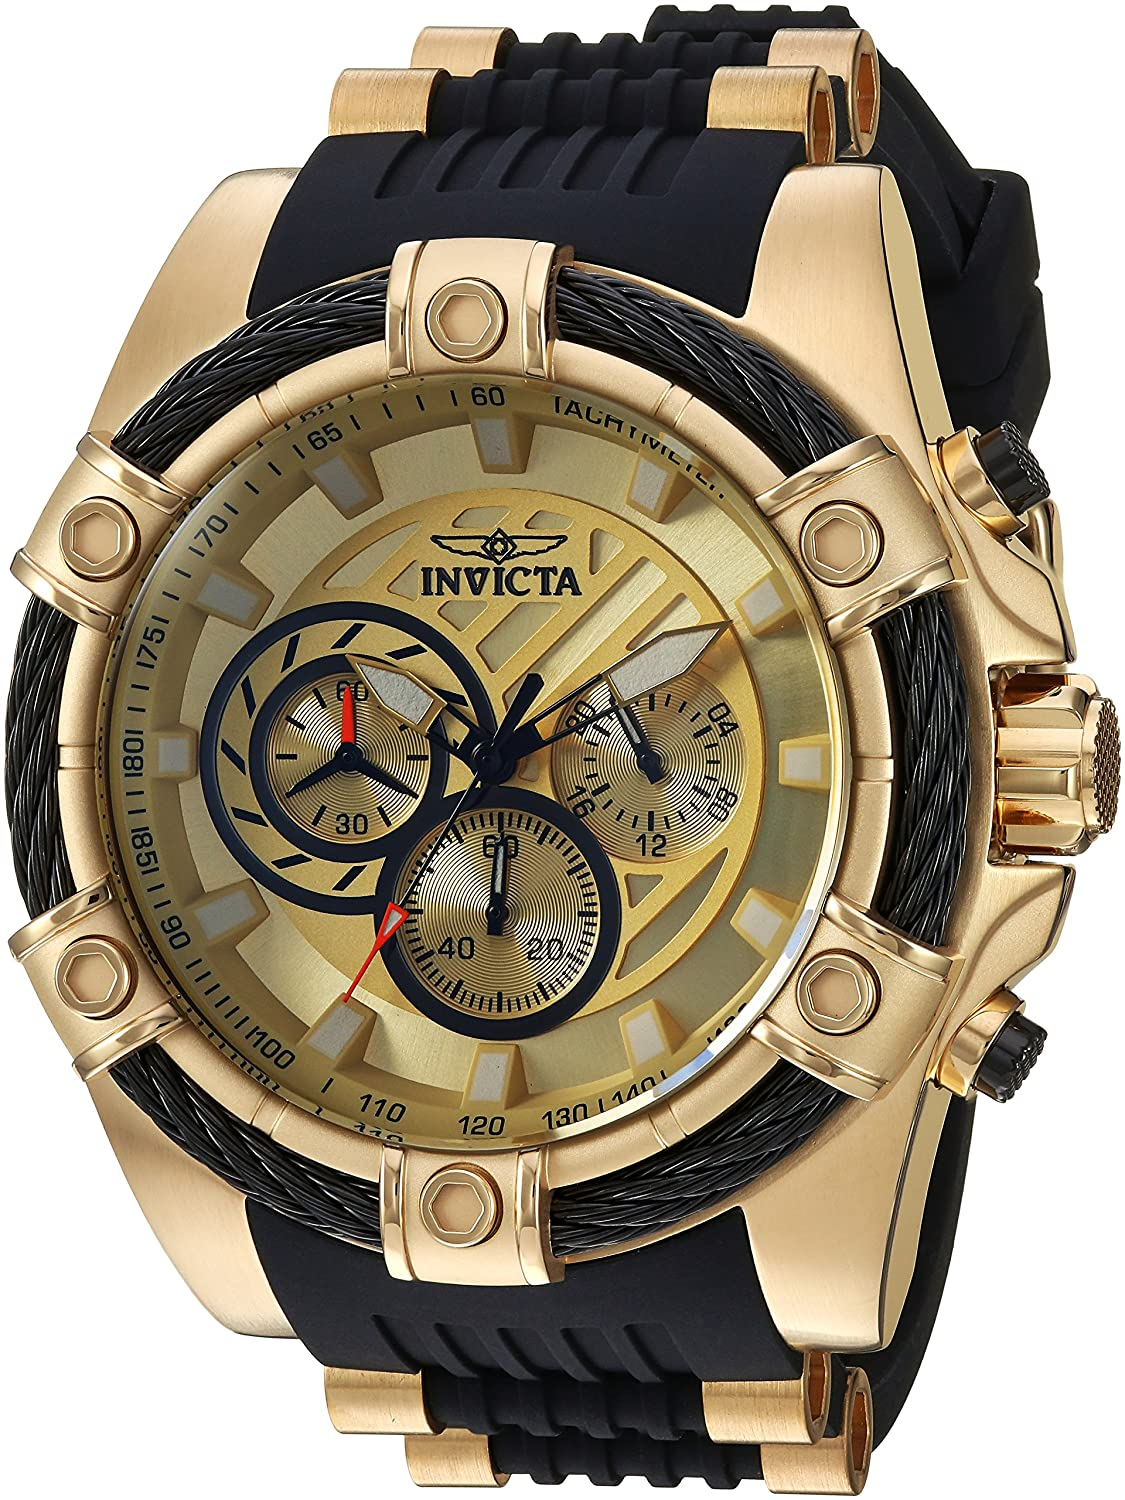 Invicta Men s Bolt Stainless Steel Quartz Watch with Silicone Strap, Black, 26 Model 25526